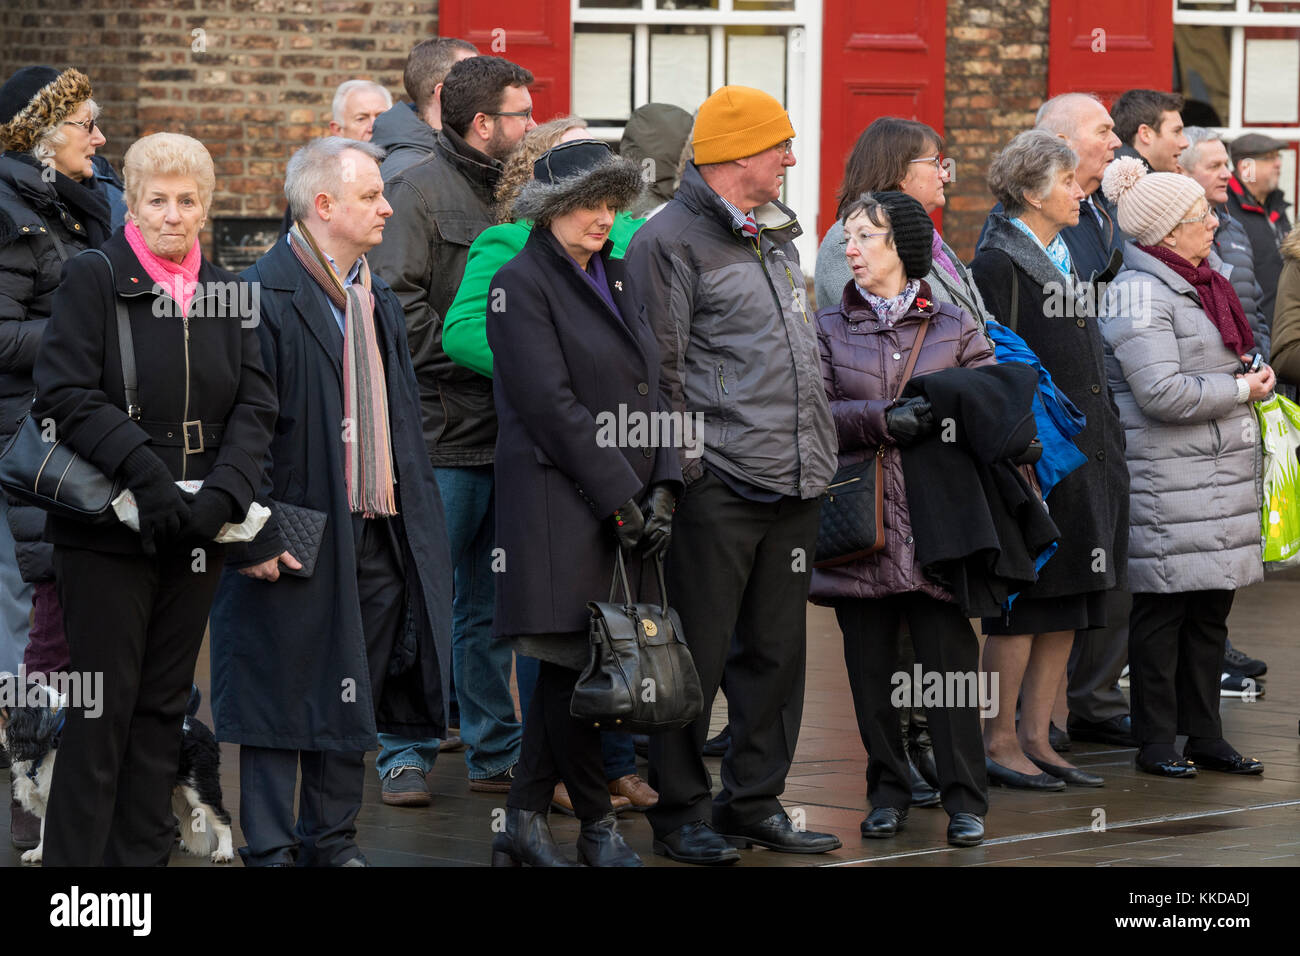 Close-up of people lining the route standing at side of road in the cold, before military parade outside York Minster - Stock Image